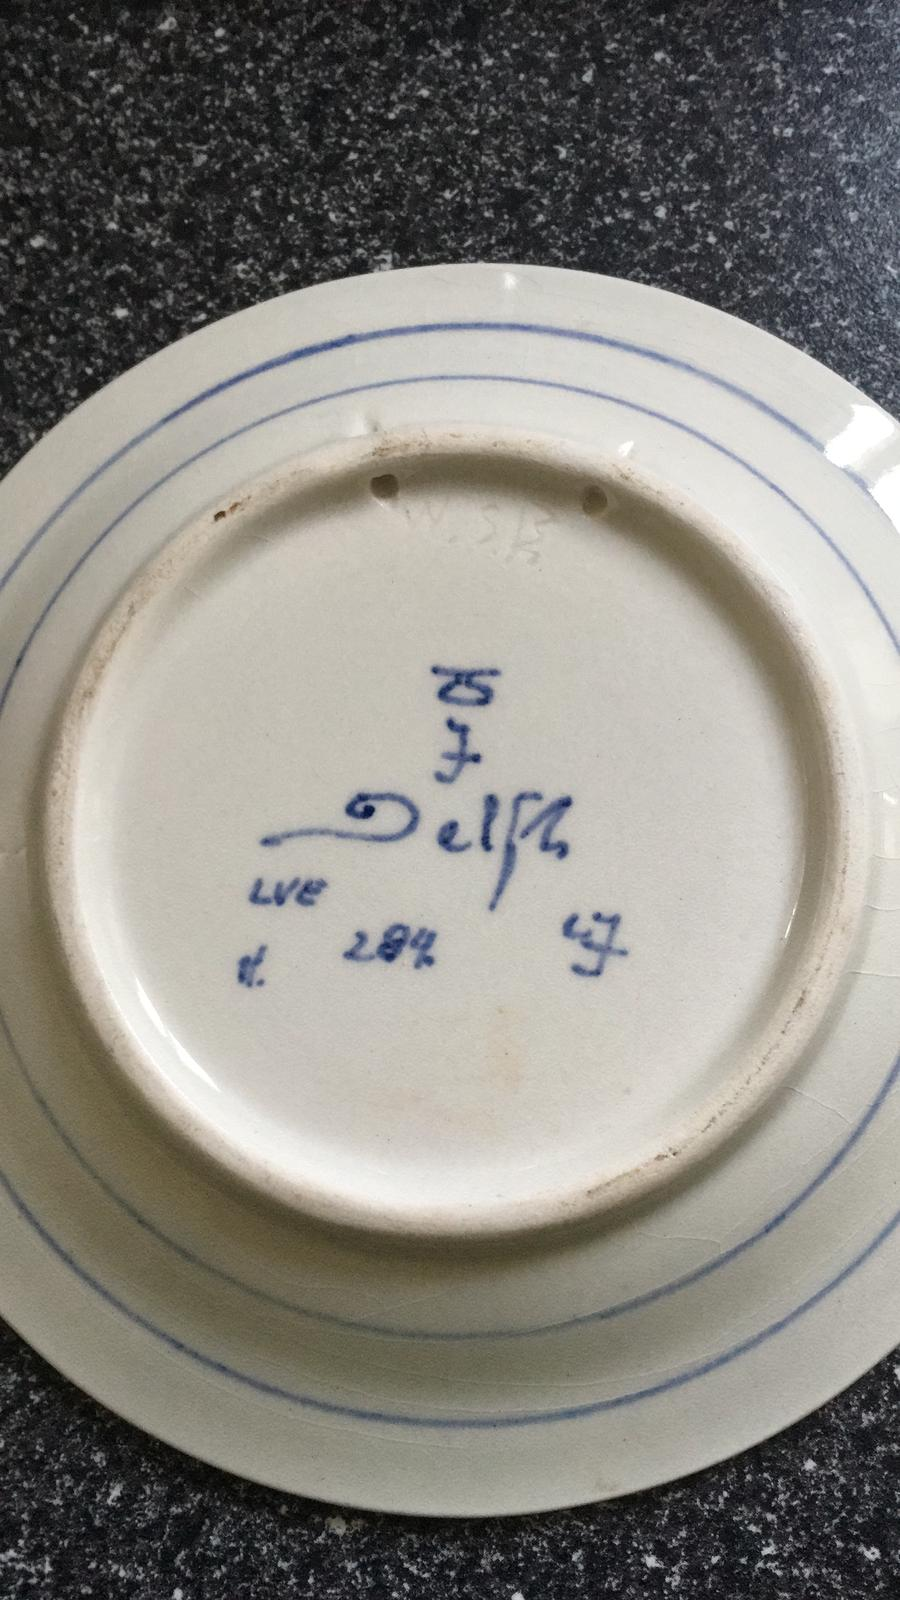 Identifying this Delft plate Delf1b10